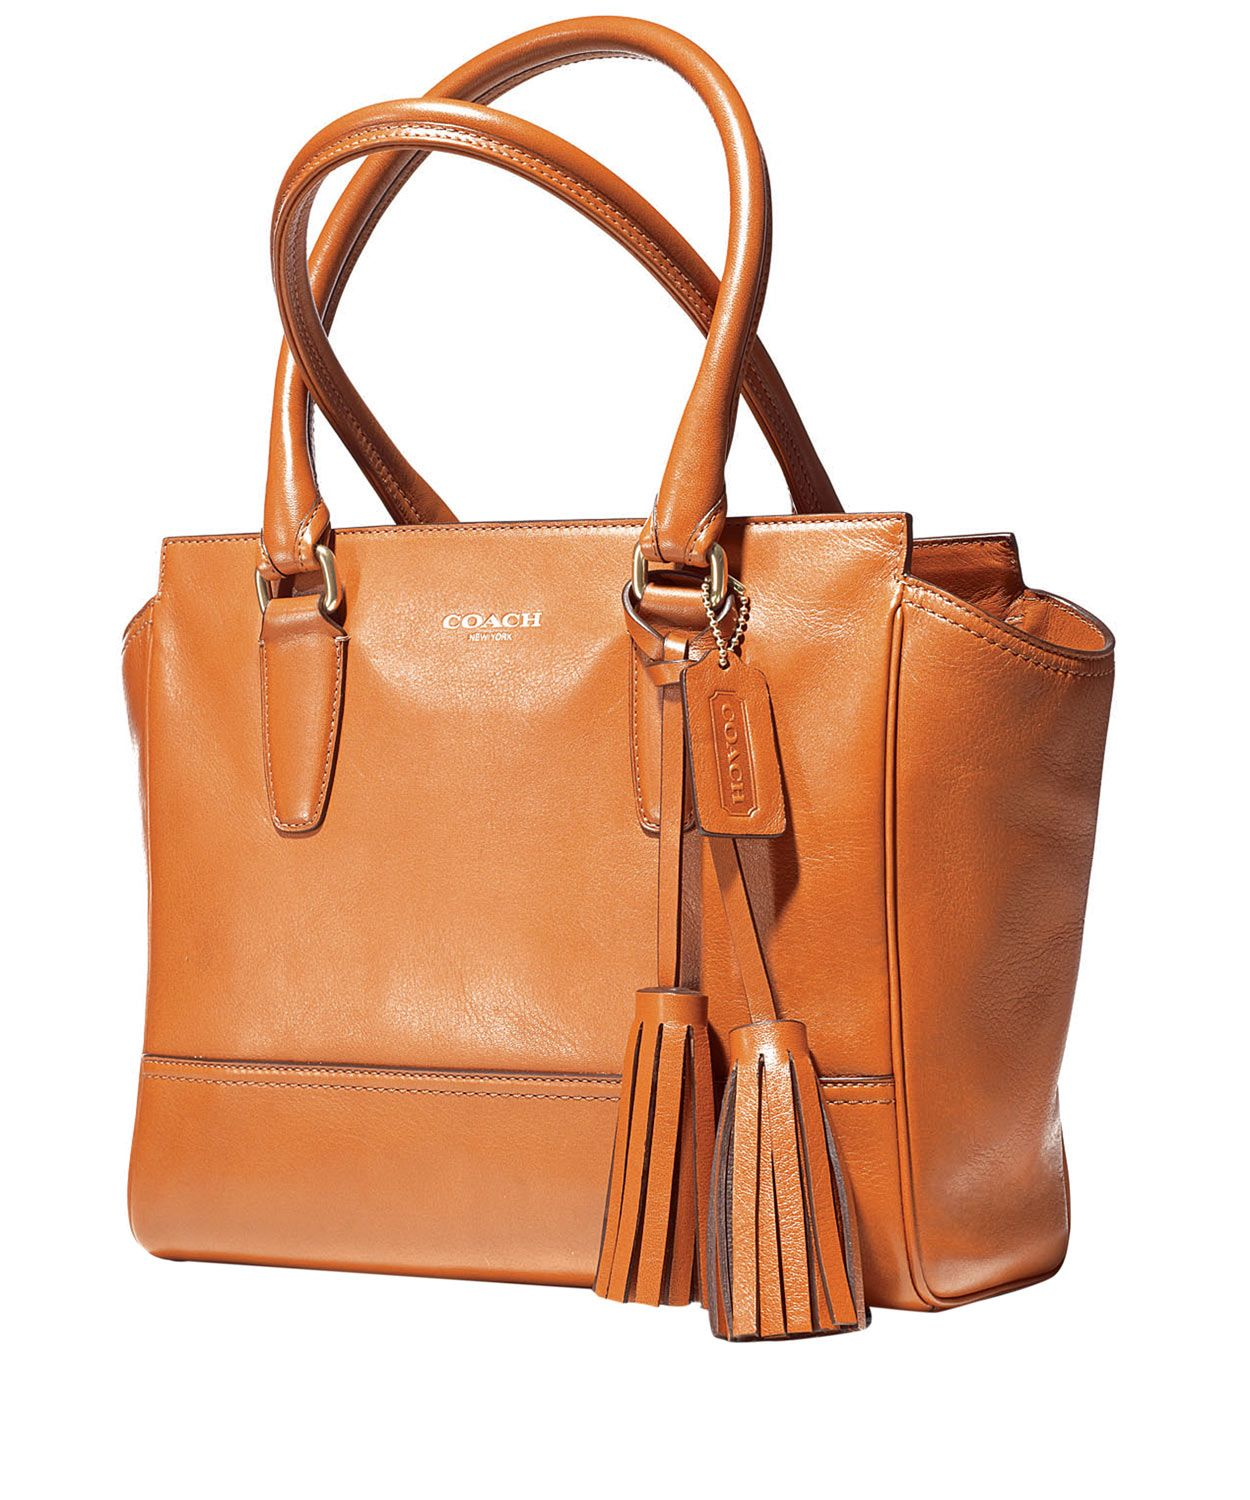 ... Tan Legacy Leather Tote Bag, Coach. Shop the latest bags from the Coach  collection ... 899a7f6dd9